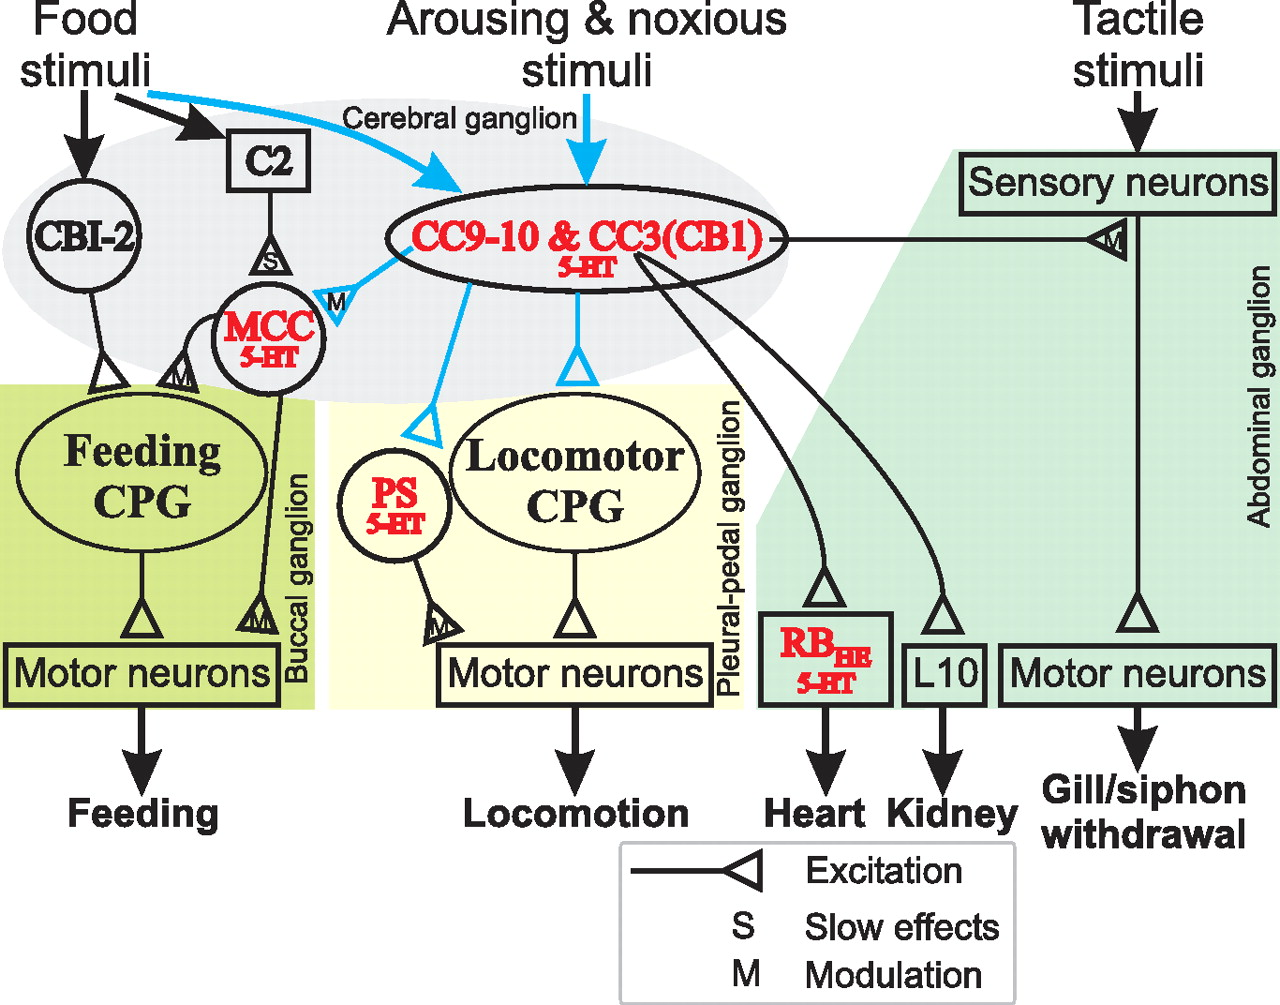 Neural Analog Of Arousal Persistent Conditional Activation A Circuits 8085 Projects Blog Archive Heart Rate Monitor Circuit Download Figure